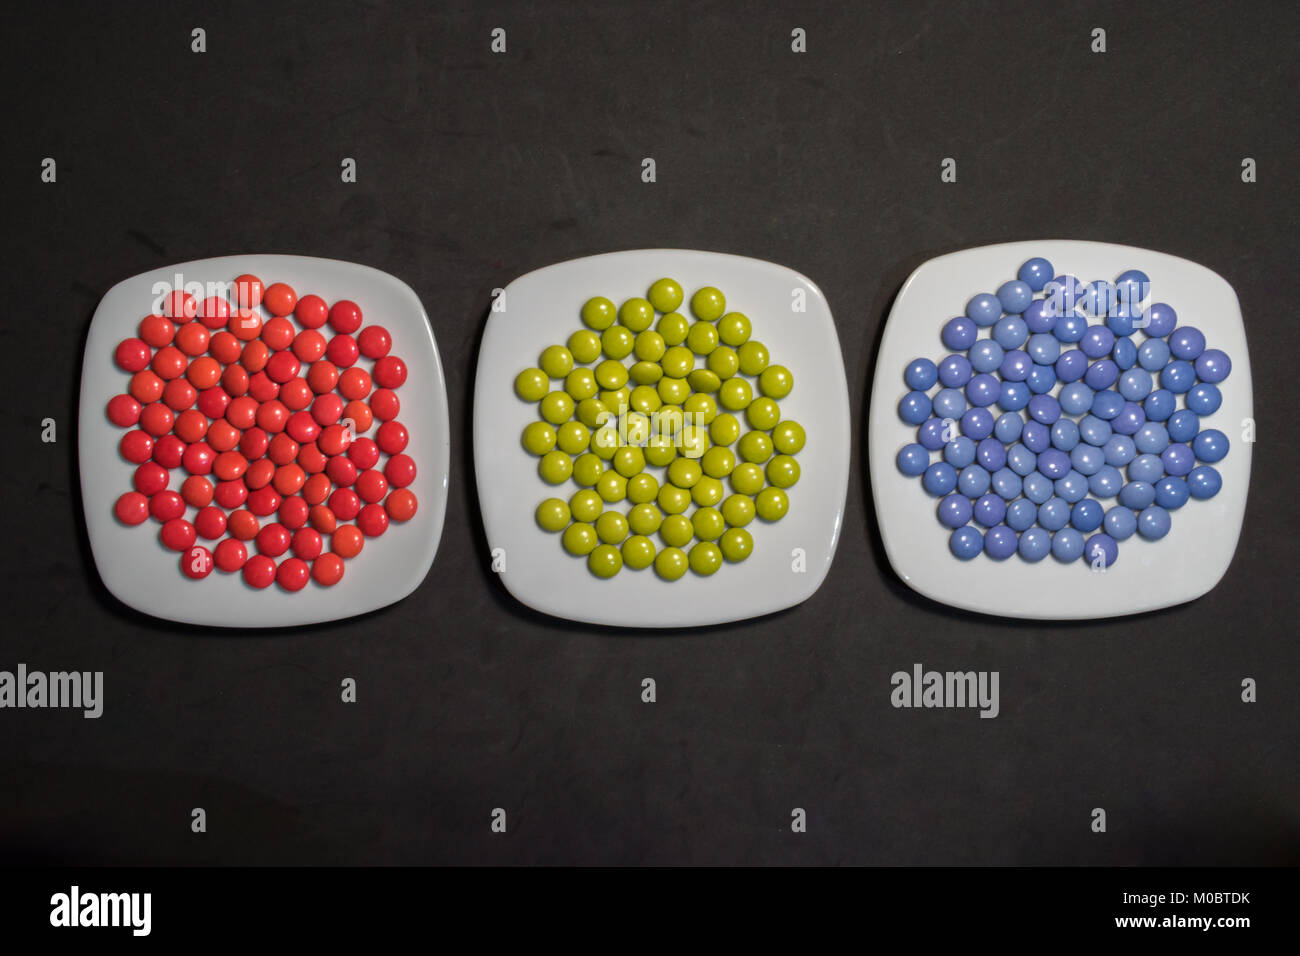 Three plates with colorful candies of chocolates with RGB colors on black background - Stock Image